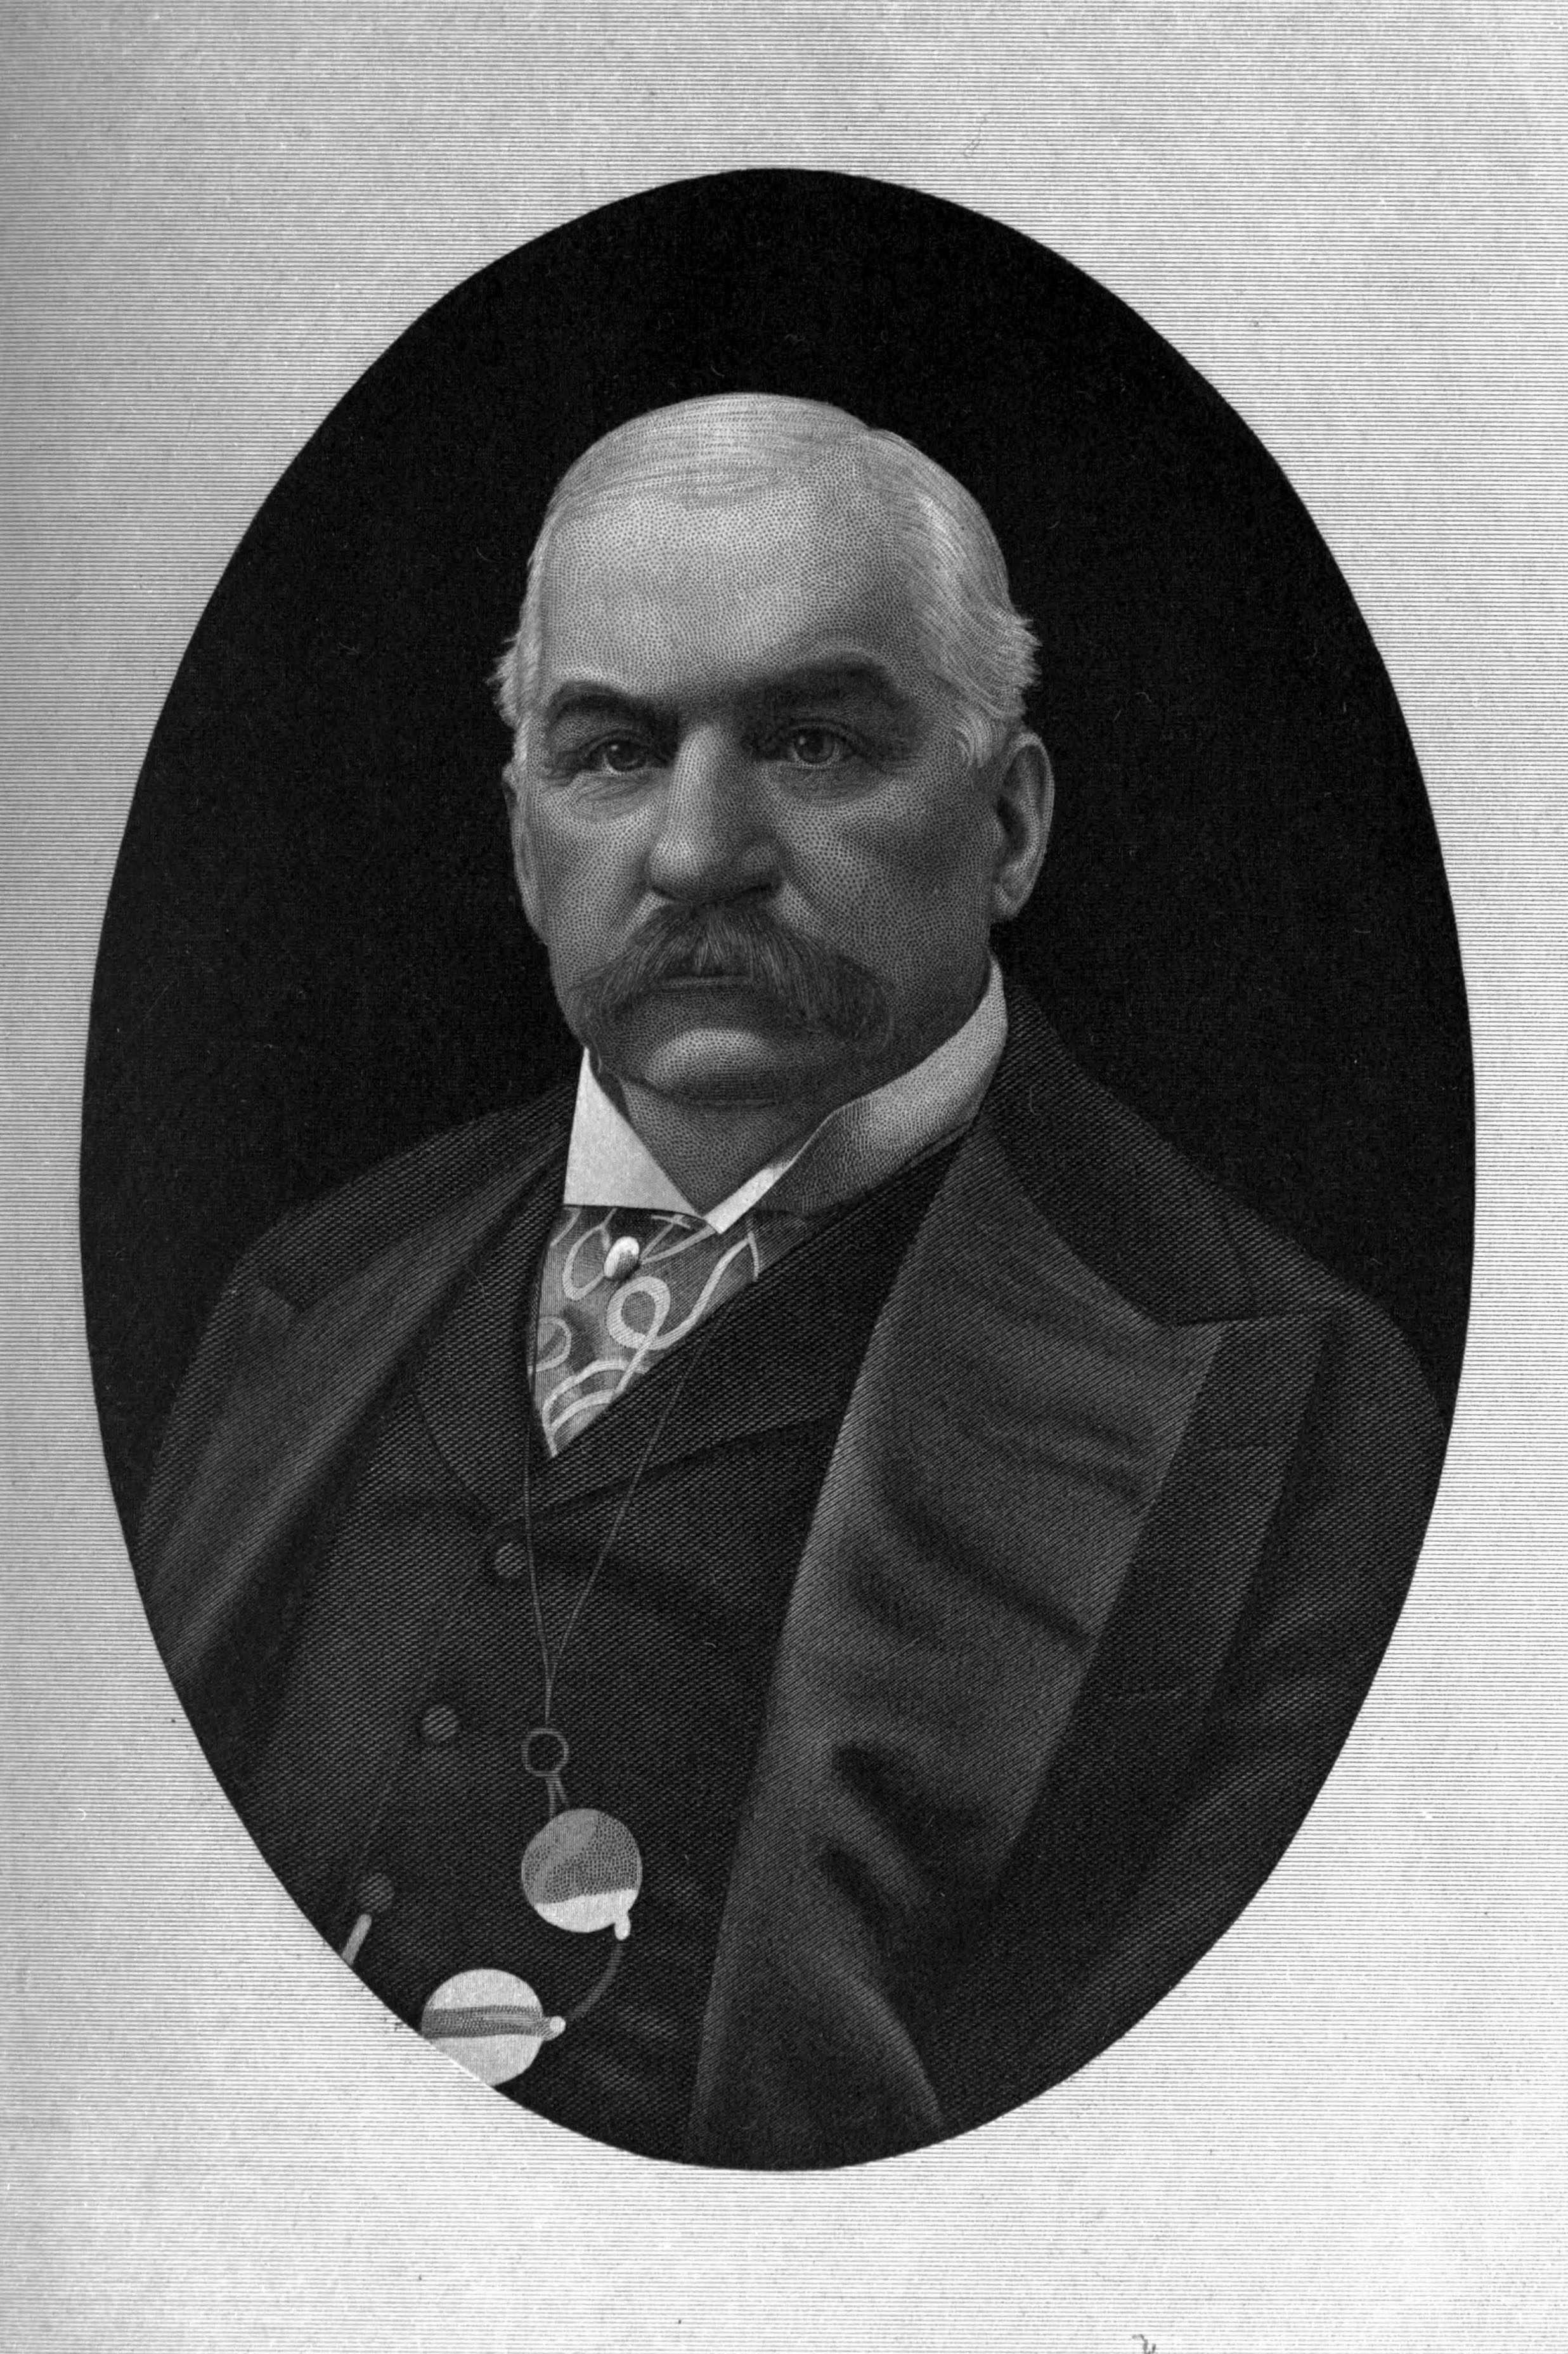 J. Pierpont Morgan, Robber Baron and Philanthropist